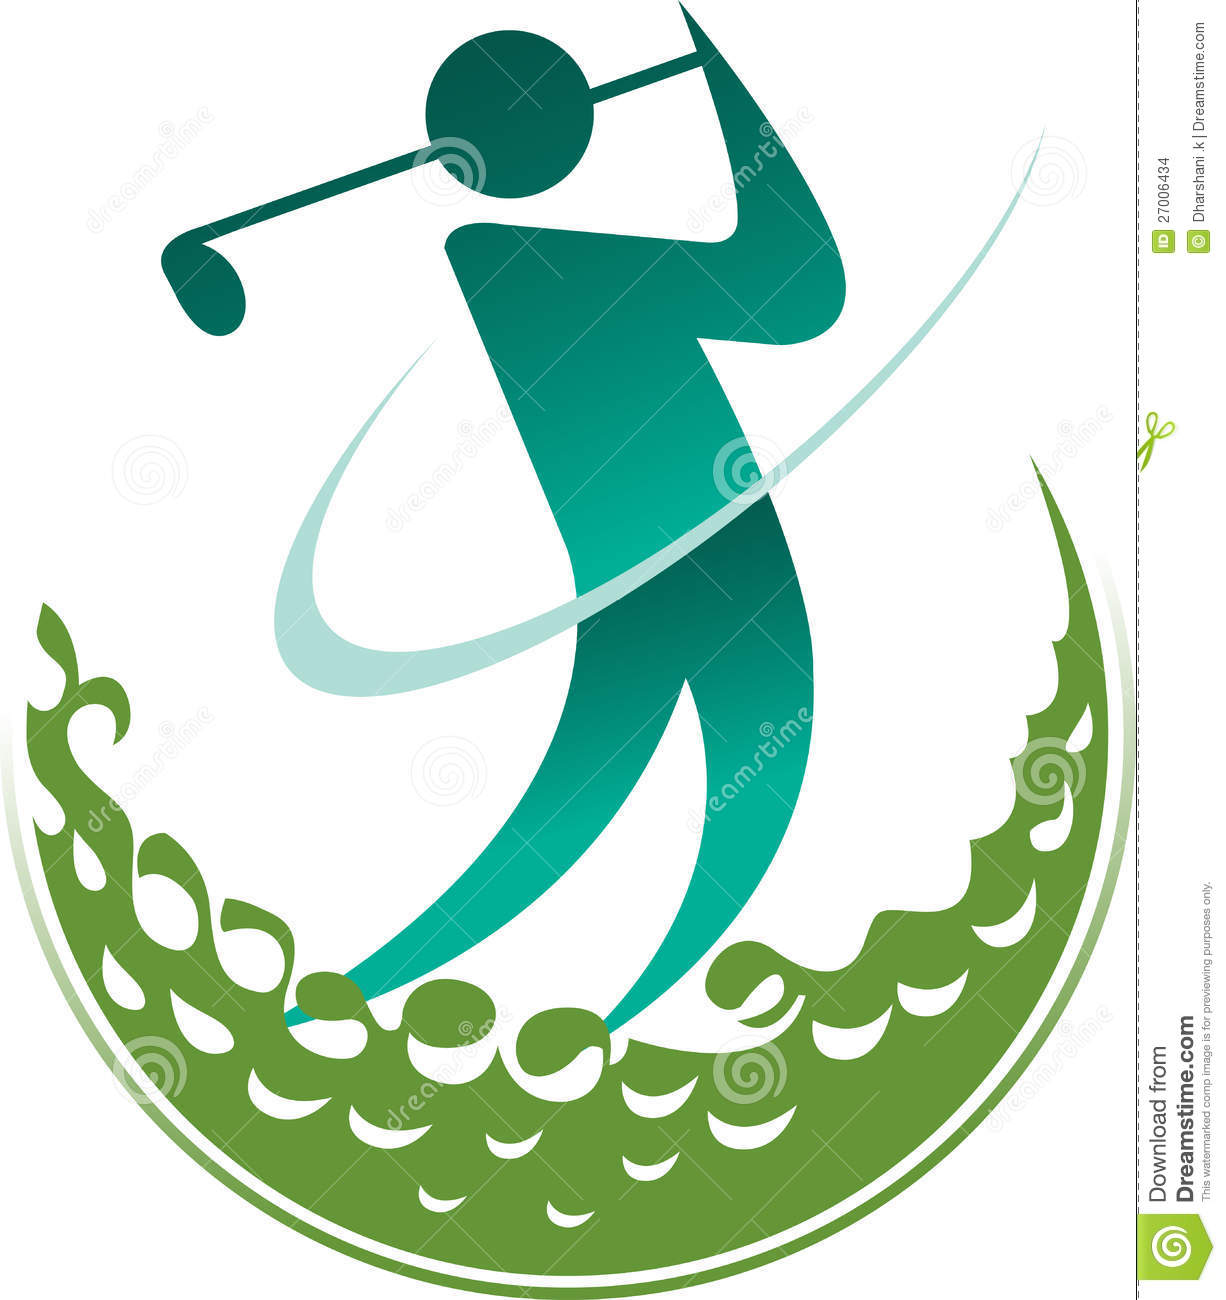 golf clipart at getdrawings com free for personal use golf clipart rh getdrawings com free golf clipart images free golf clipart black and white